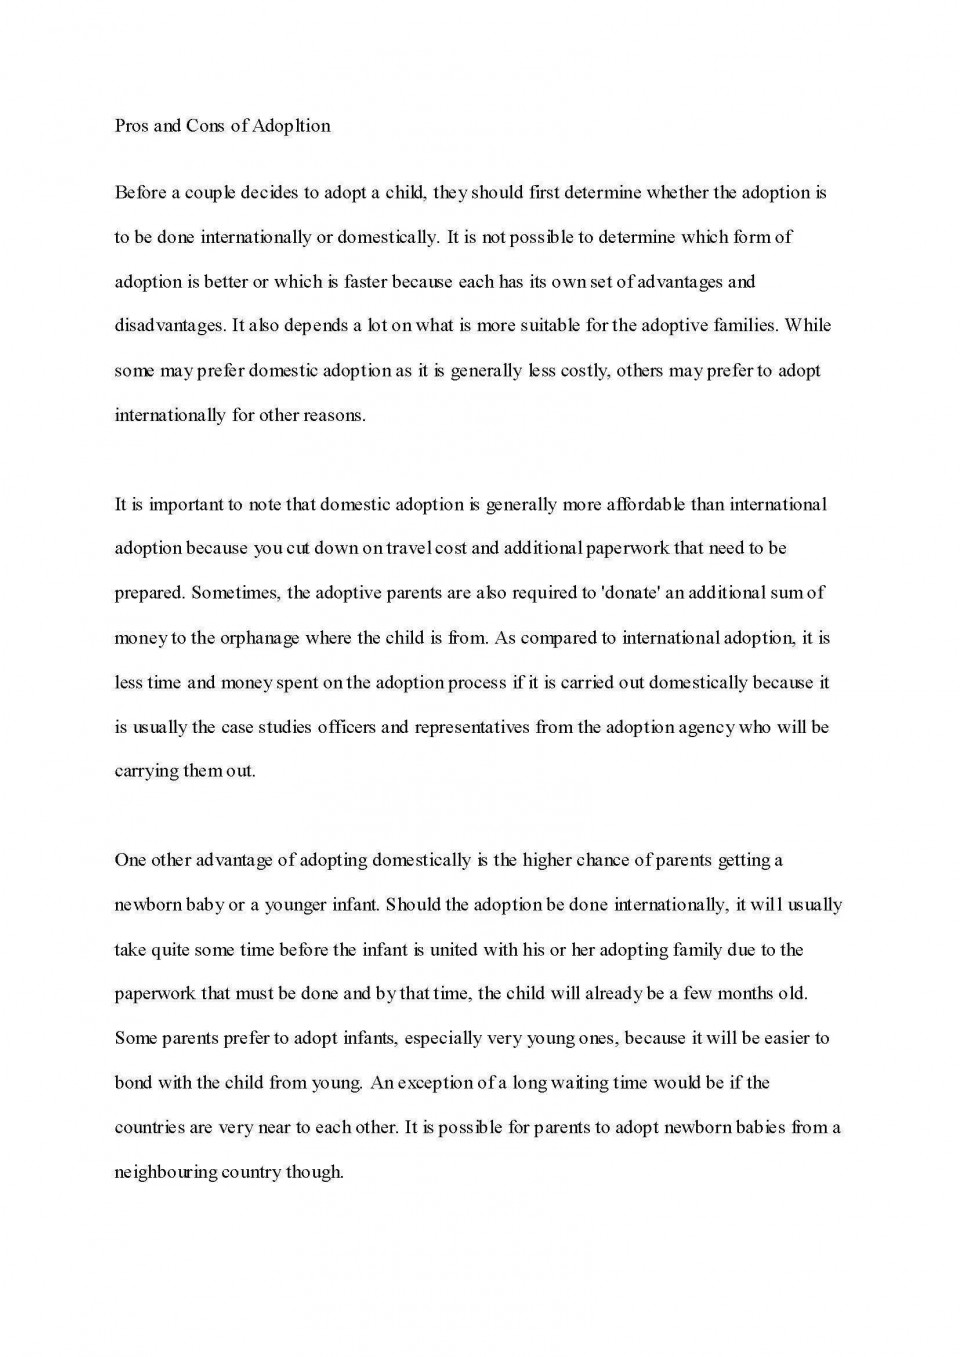 004 Amazing Compare And Contrast Essay Example College High Def  For Topic Outline960